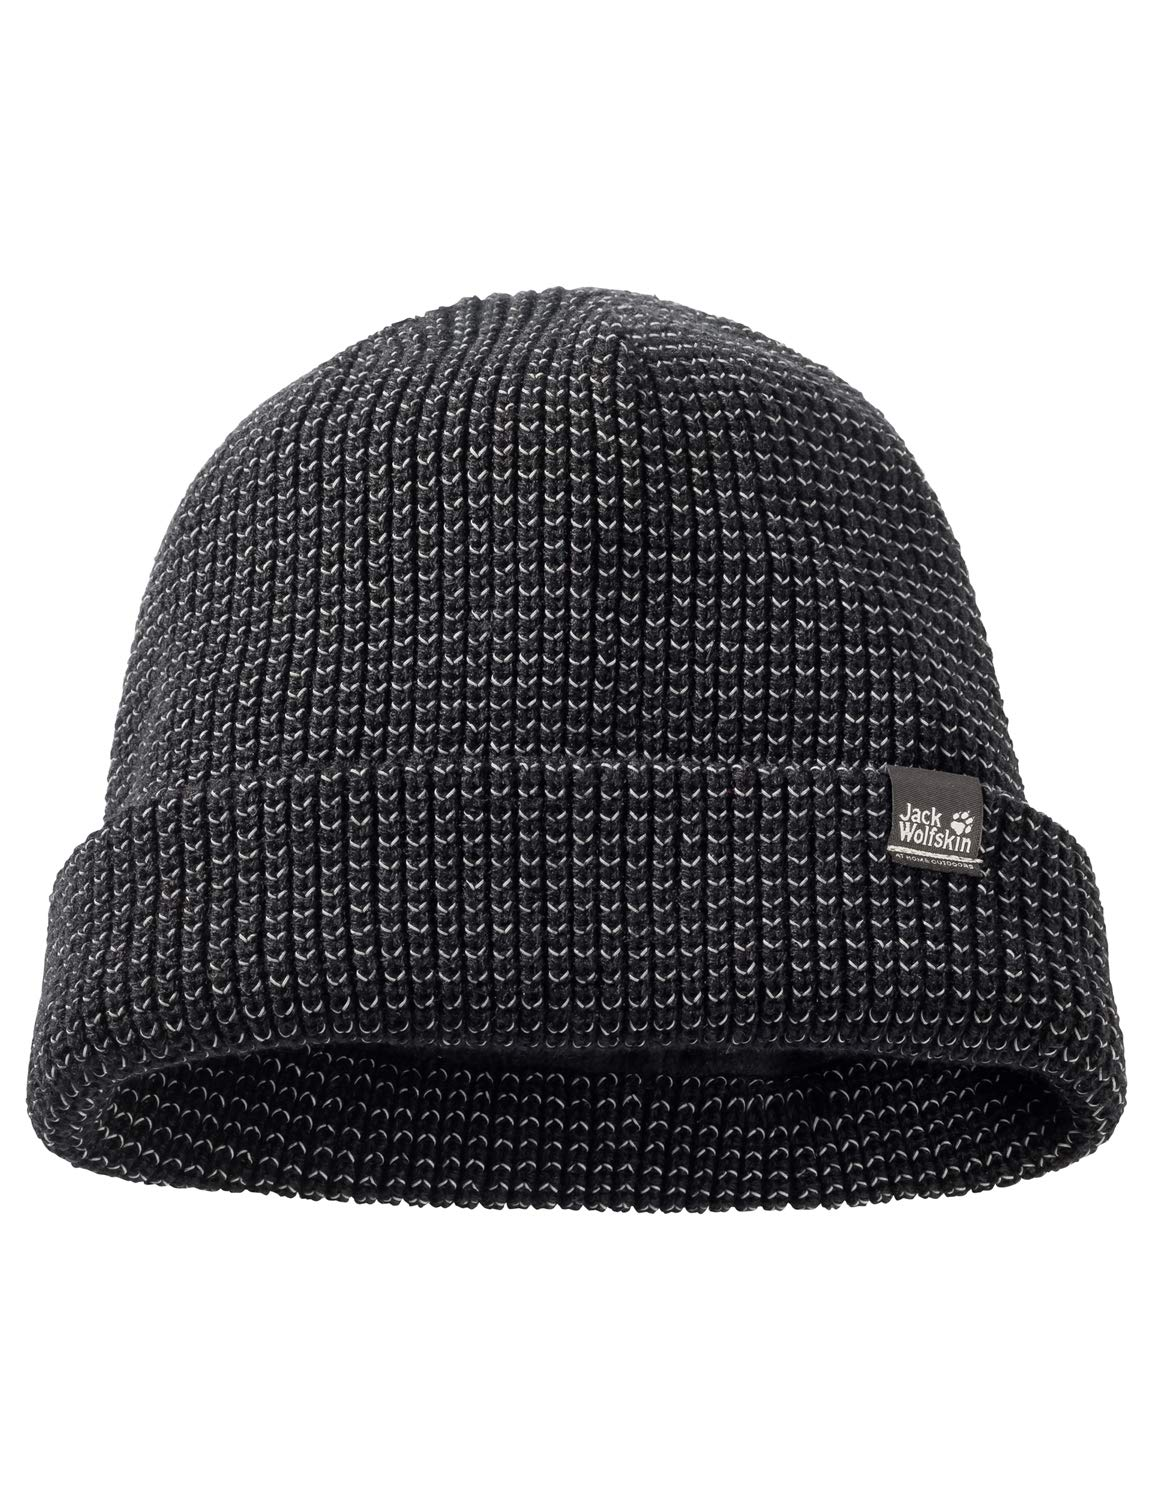 Jack Wolfskin NIGHT HAWK CAP